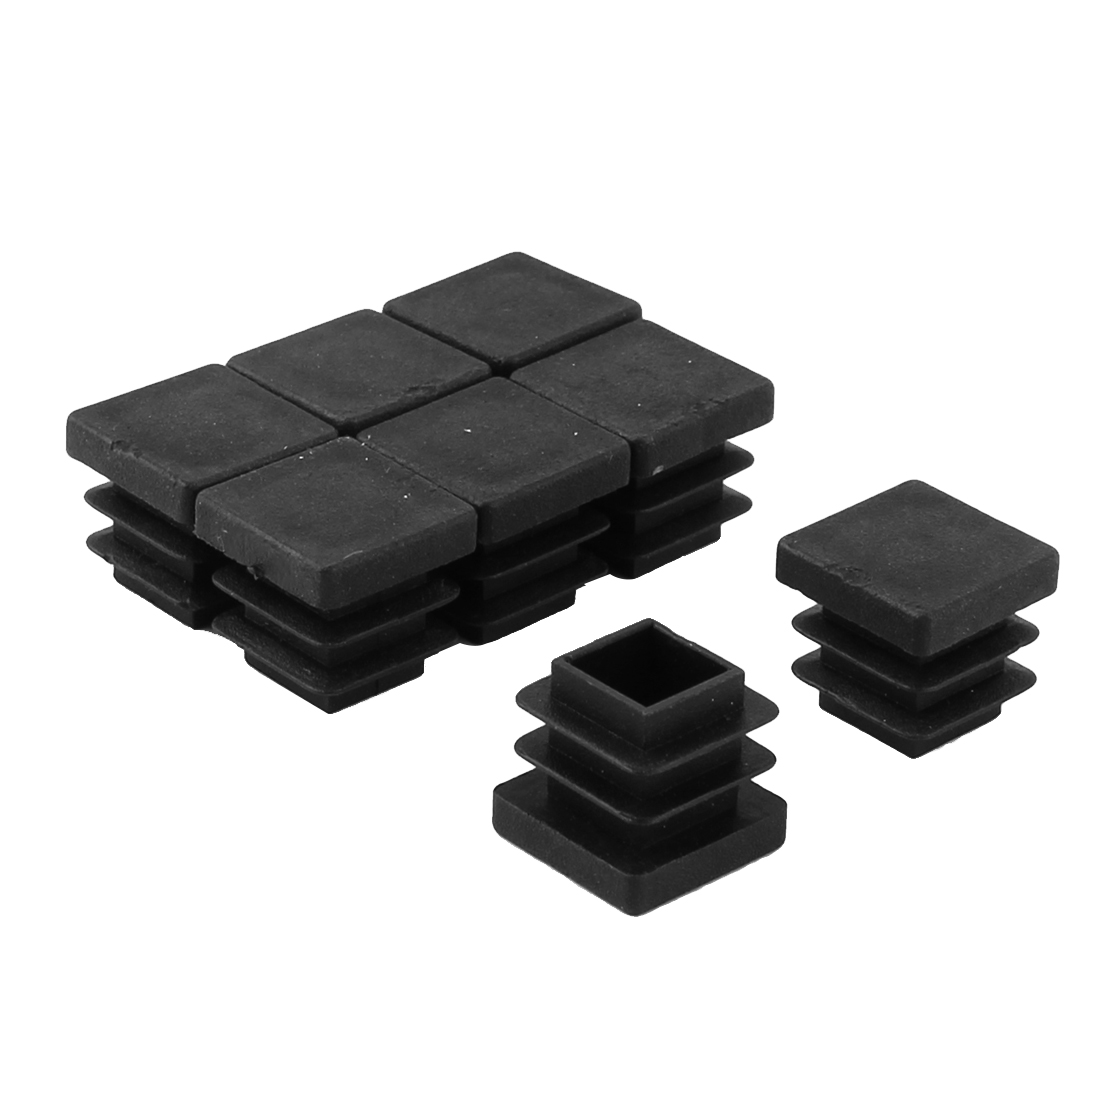 Table Chair Legs Plastic Furniture Protector Square Tube Inserts Black 8pcs